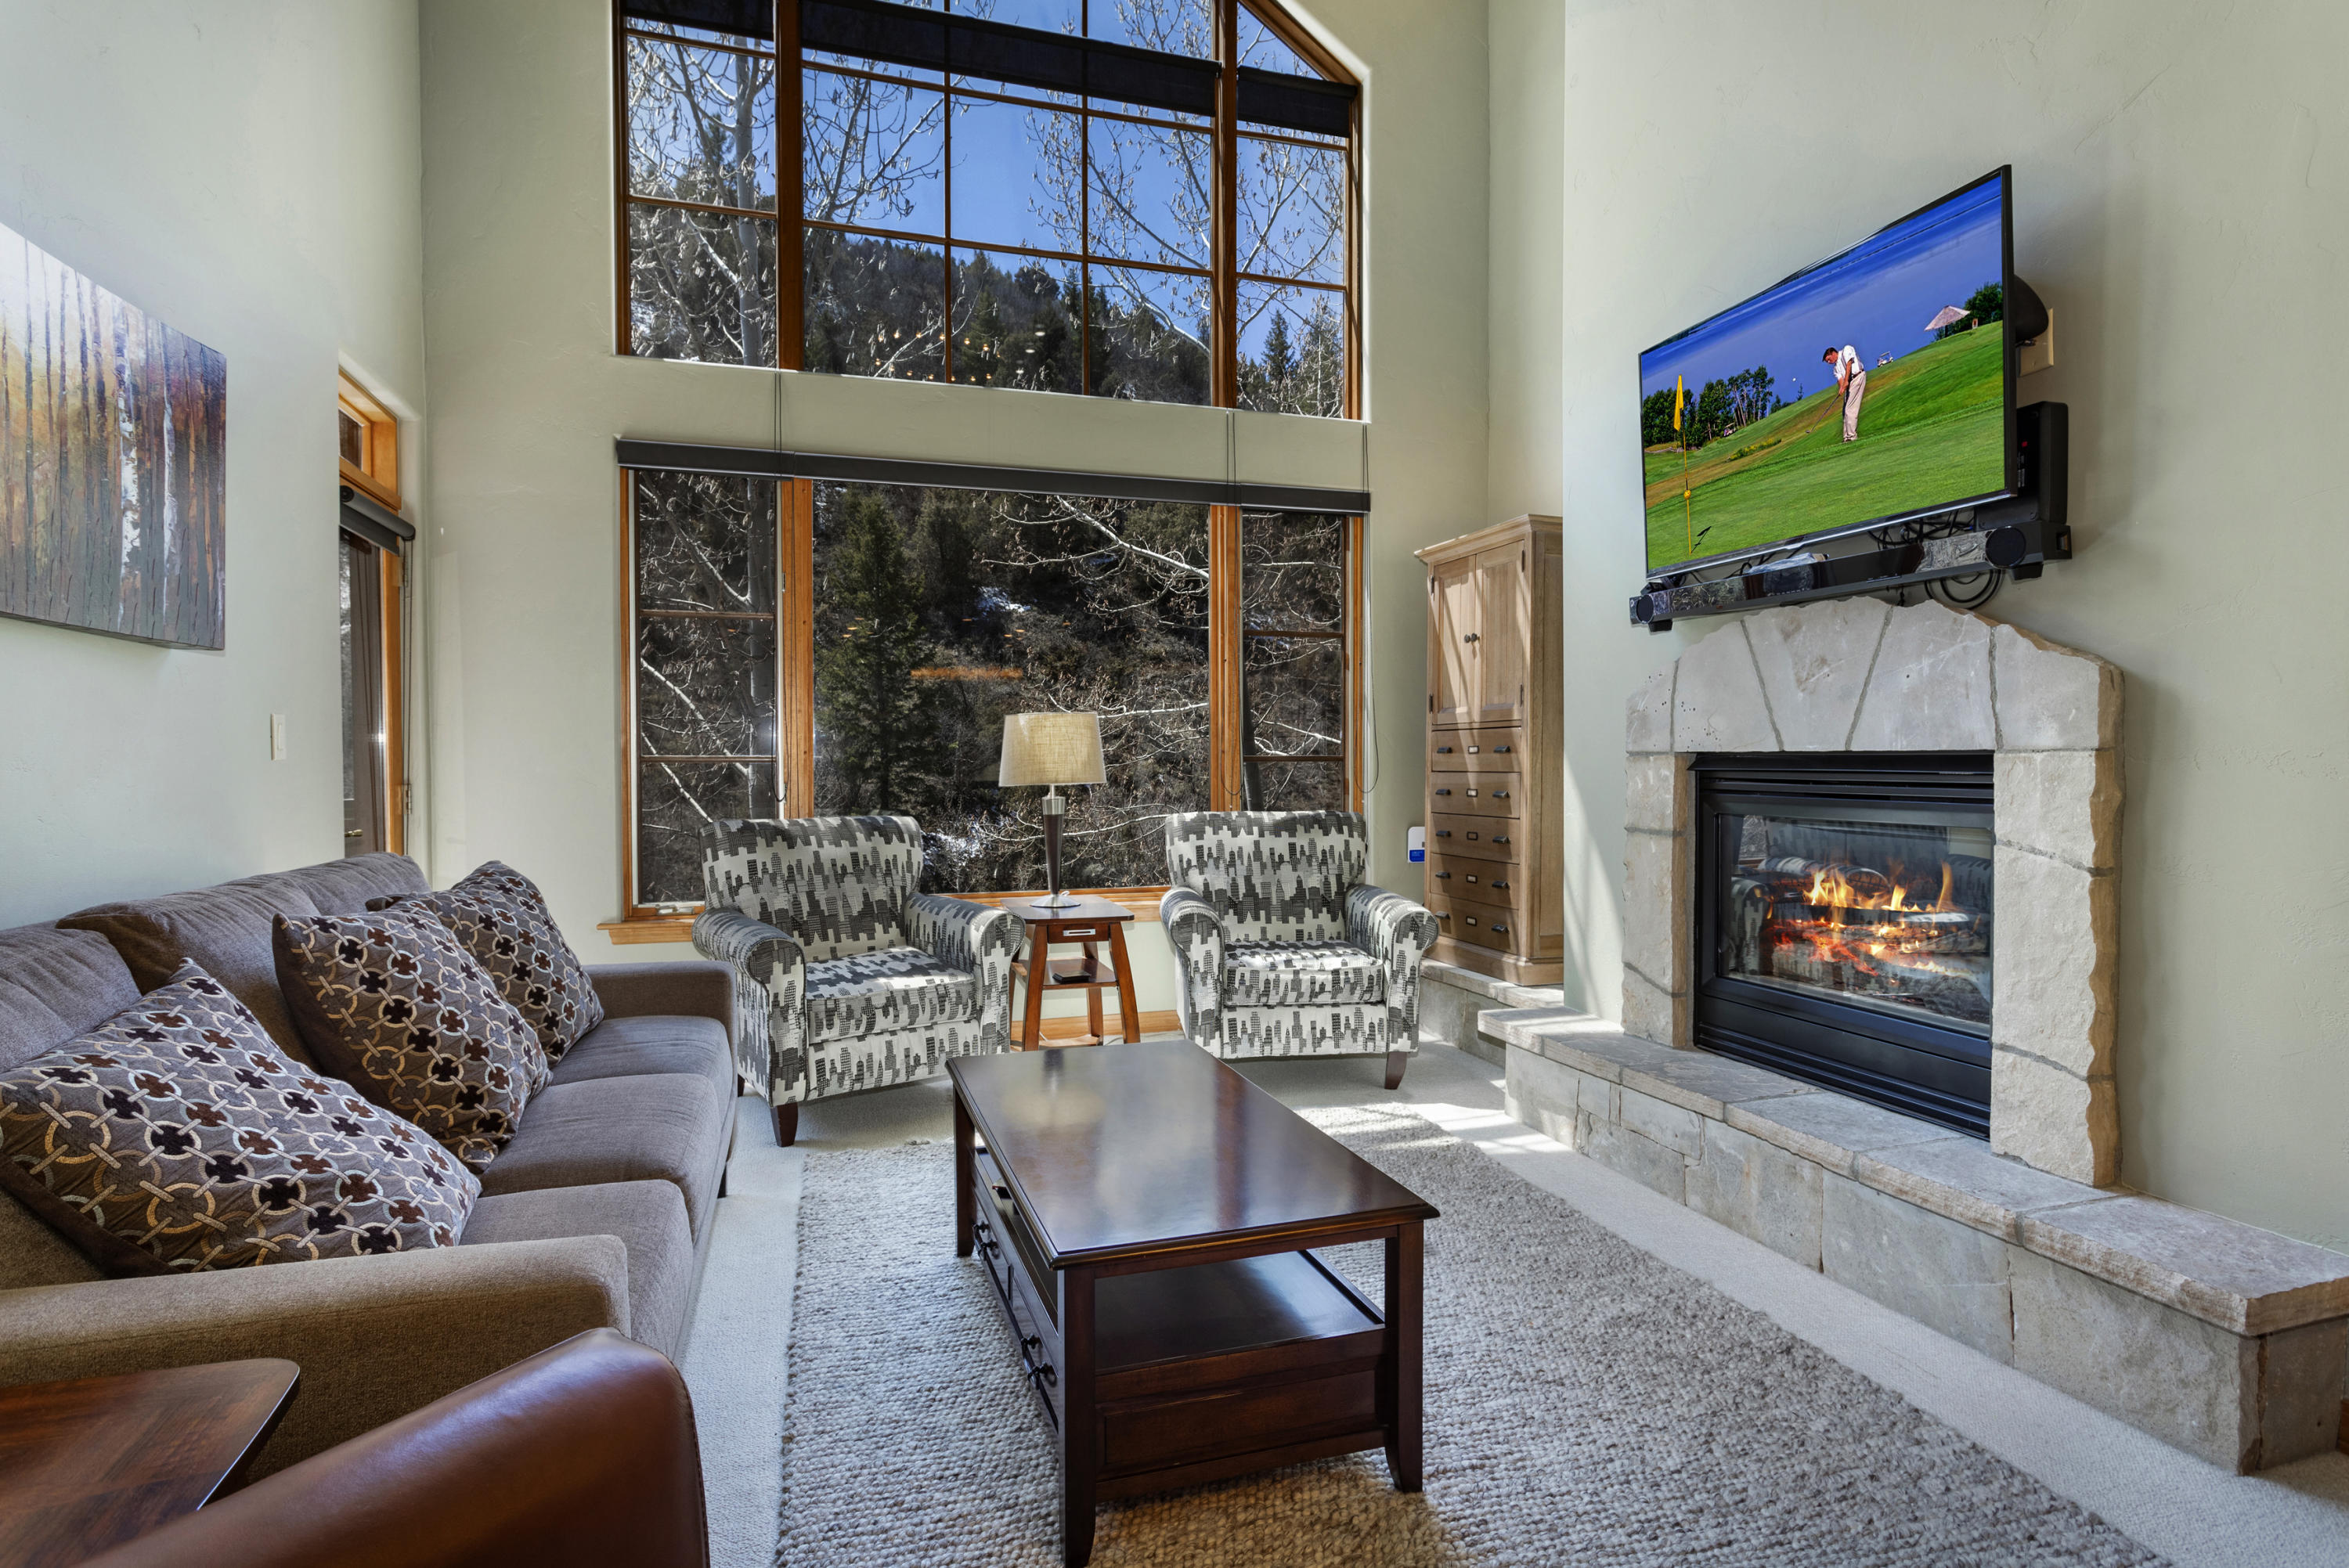 Wonderful two bedroom, two bath top floor residence an easy walk to the Arrow Bahn ski lift.  Large windows fill the residence with natural light a private mountainside view.  This is a perfect mountain retreat with excellent rental potential.